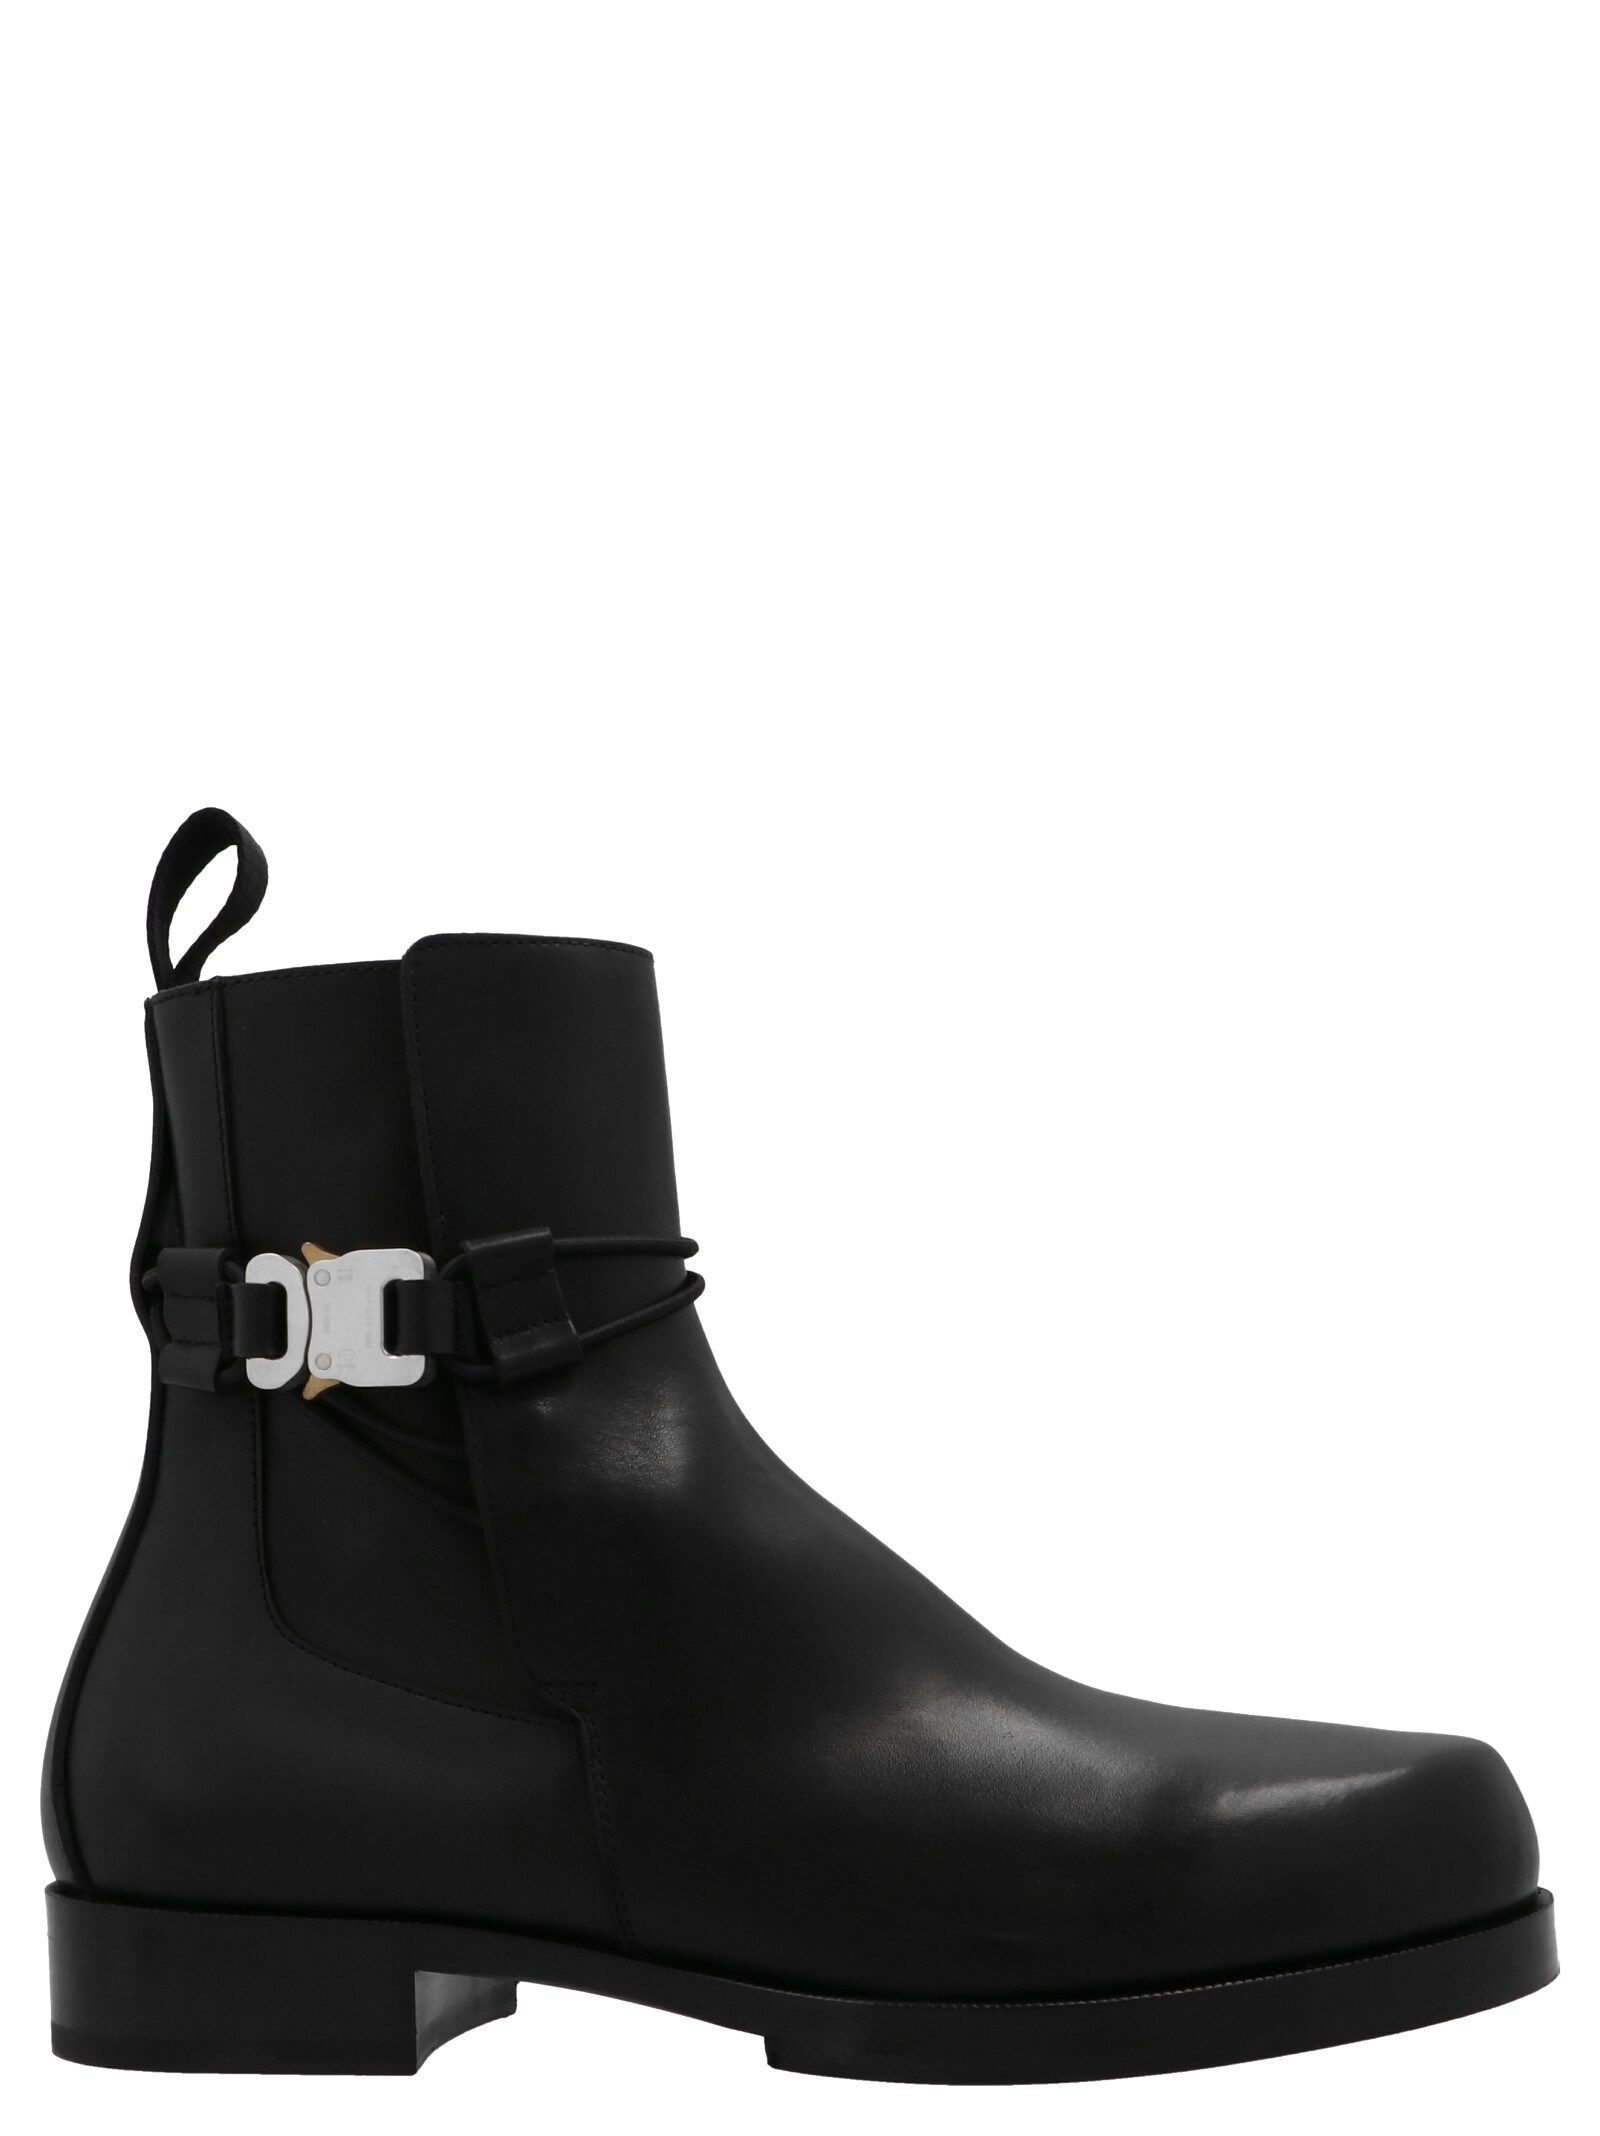 Alyx ALYX MEN'S AAUBO0038LE01BLK0001 BLACK OTHER MATERIALS ANKLE BOOTS